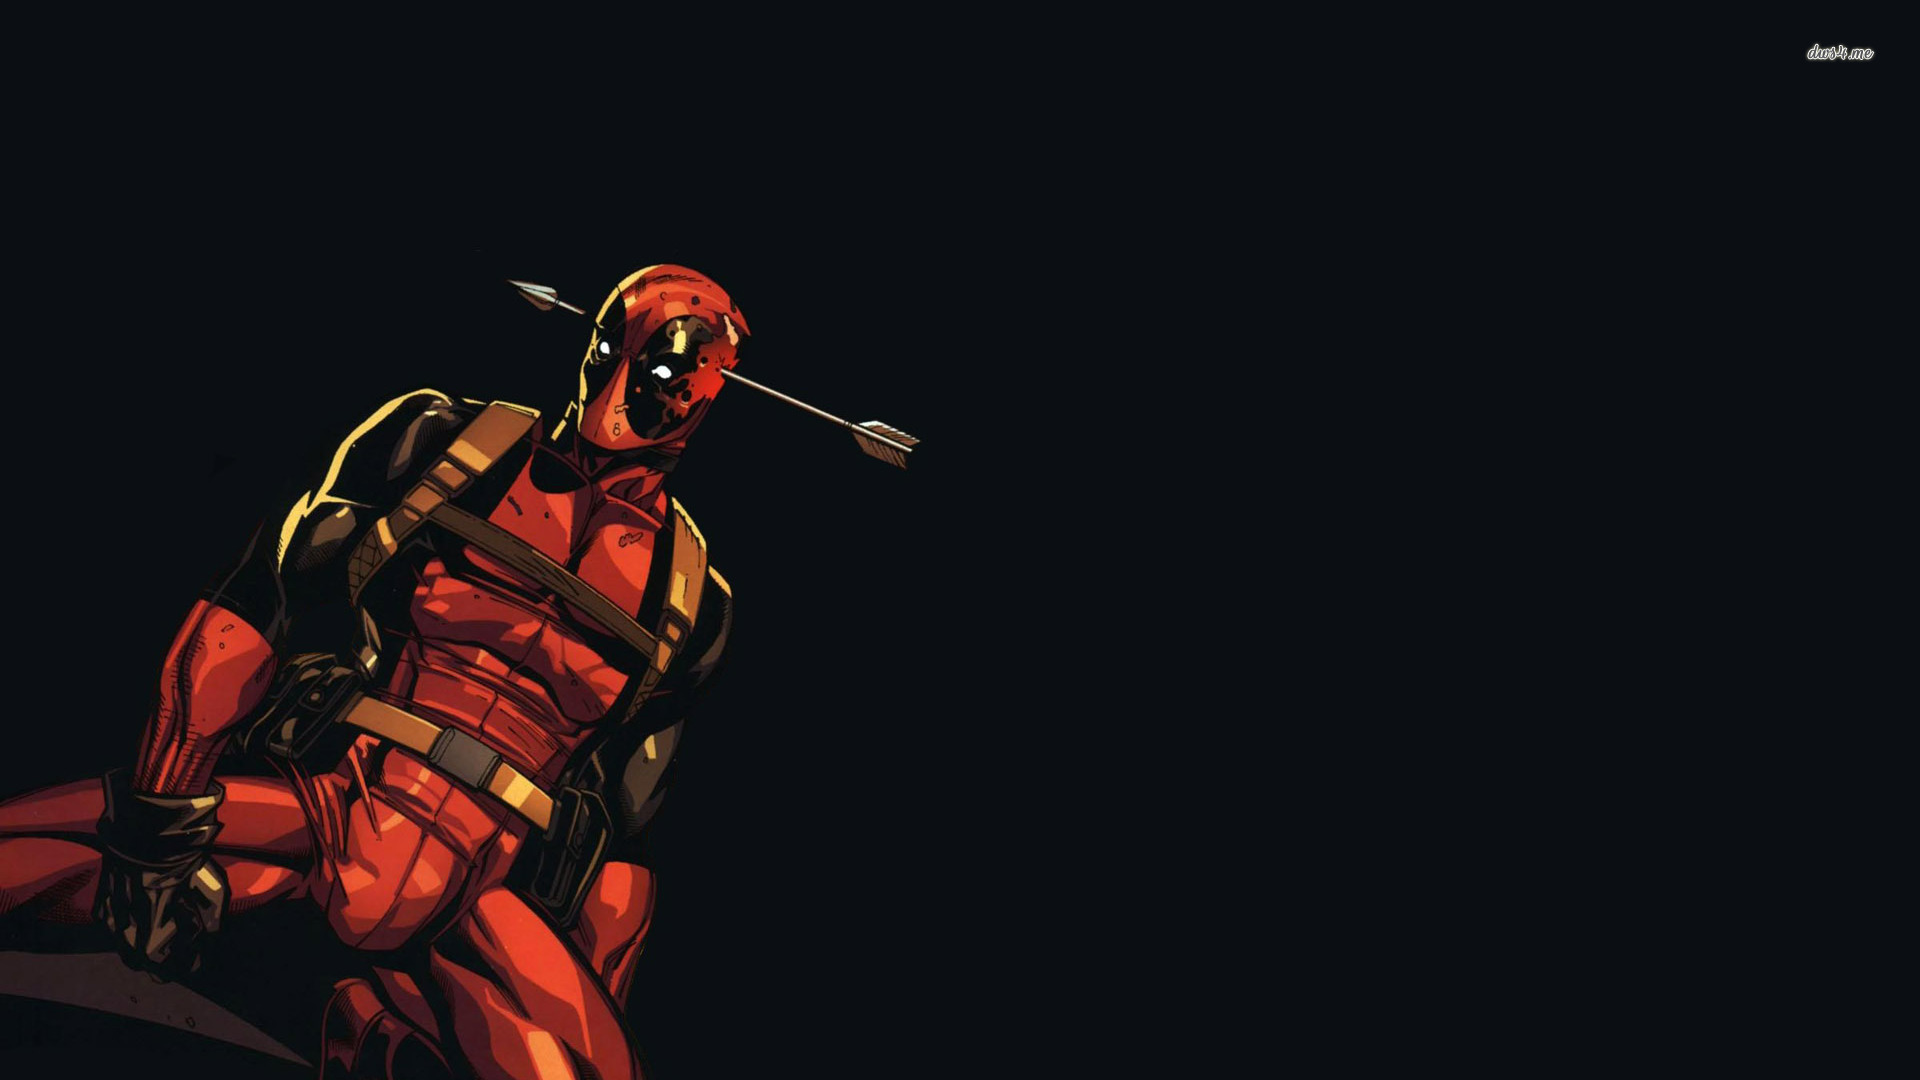 Deadpool wallpaper 1920 x 1080 wallpapersafari for Deadpool wallpaper 1920x1080